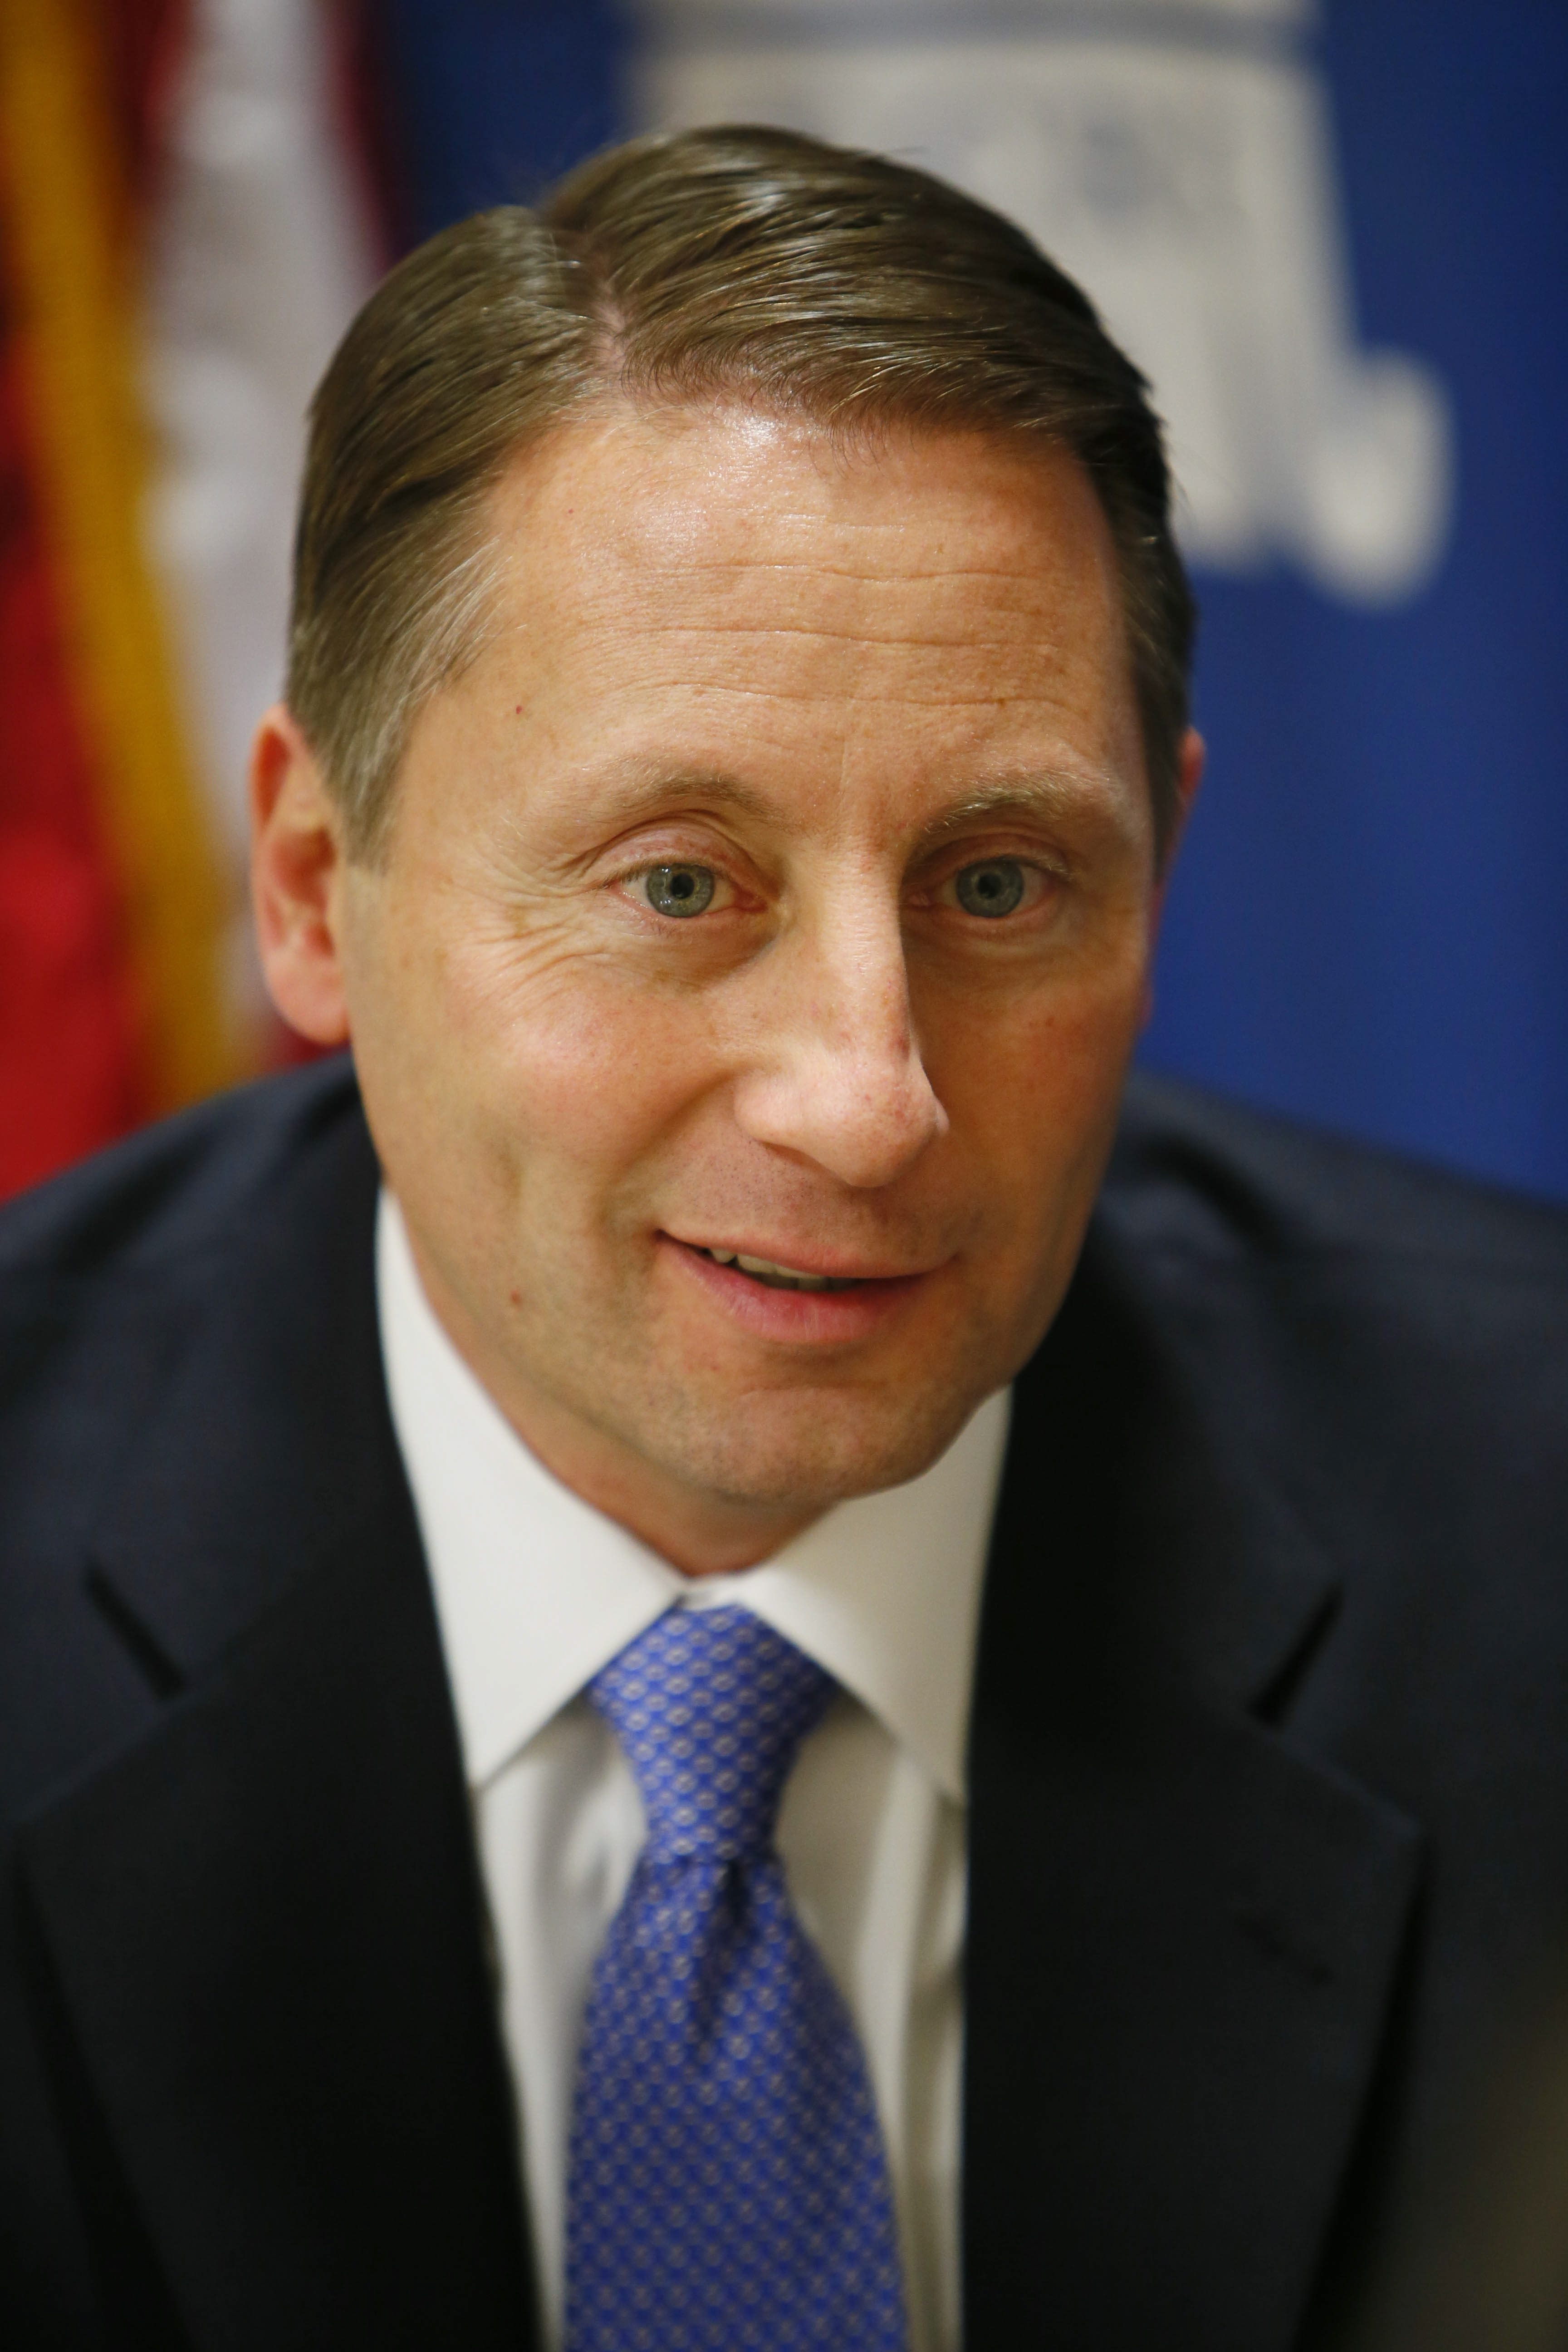 For Rob Astorino, chess game has begun to outduel Trump for nomination.